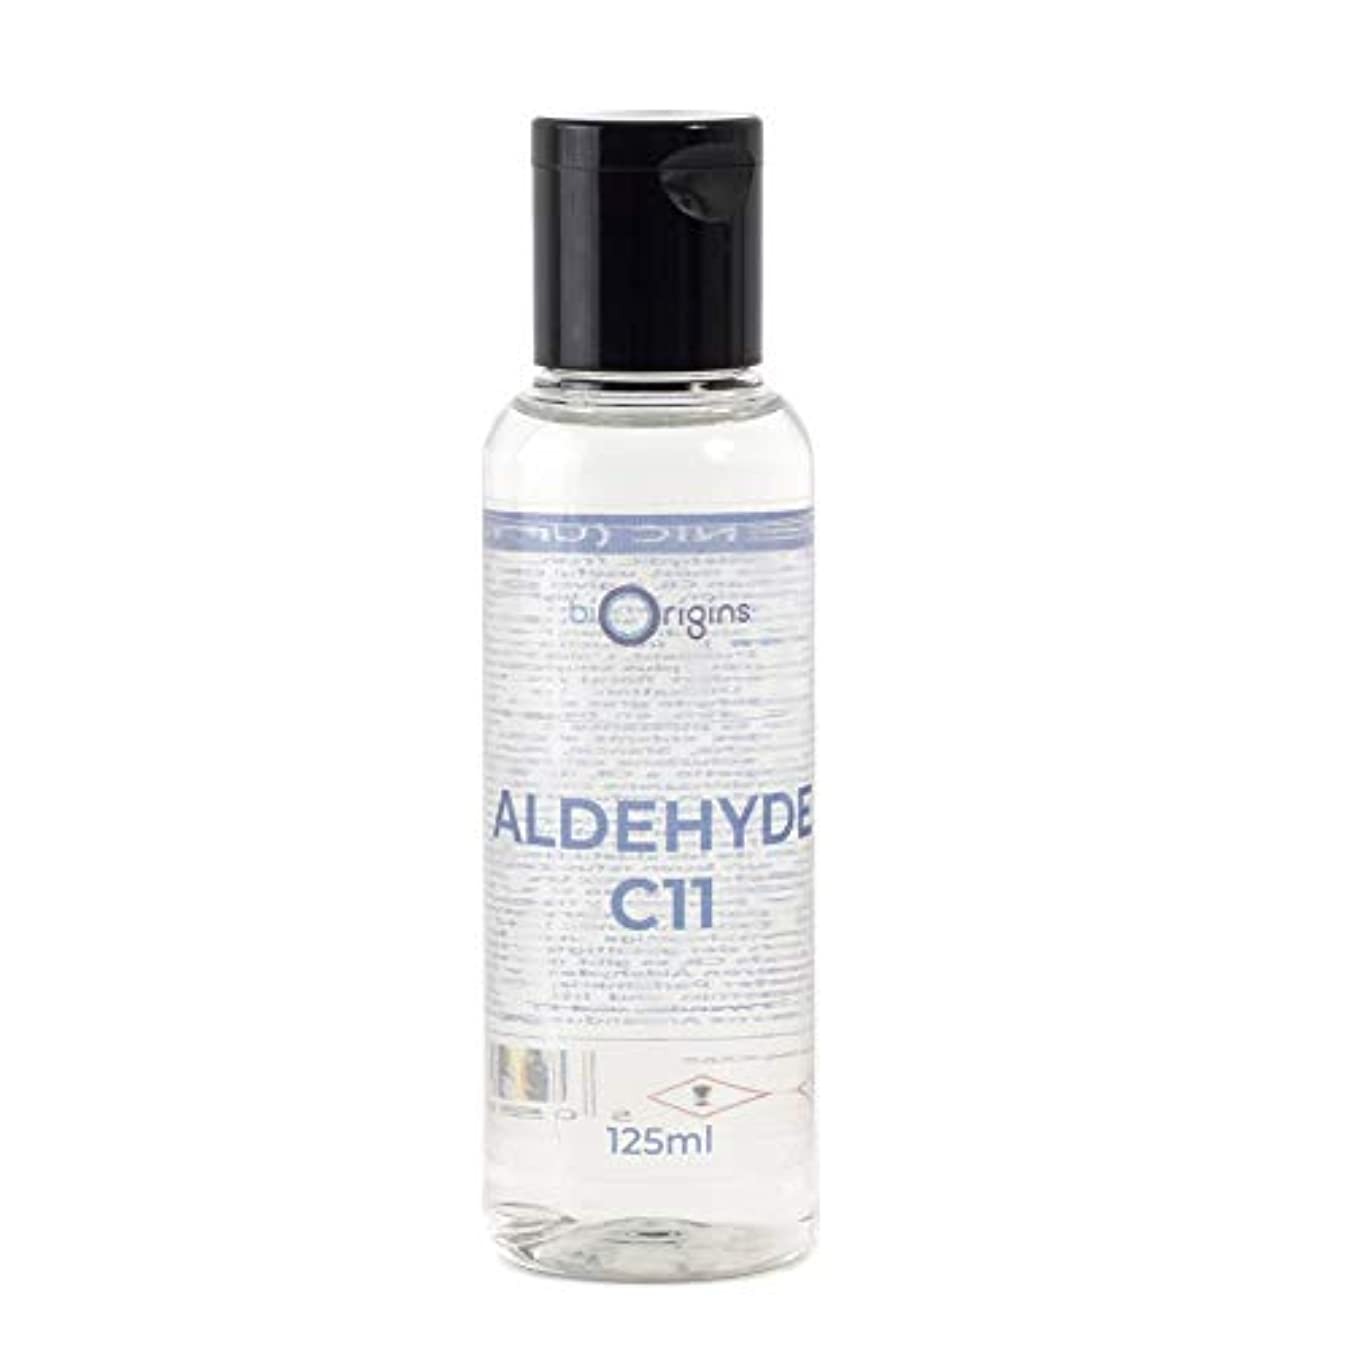 ポインタシーケンス不一致Mystic Moments | Aldehyde C11 ENIC (Undecenal) - 250ml